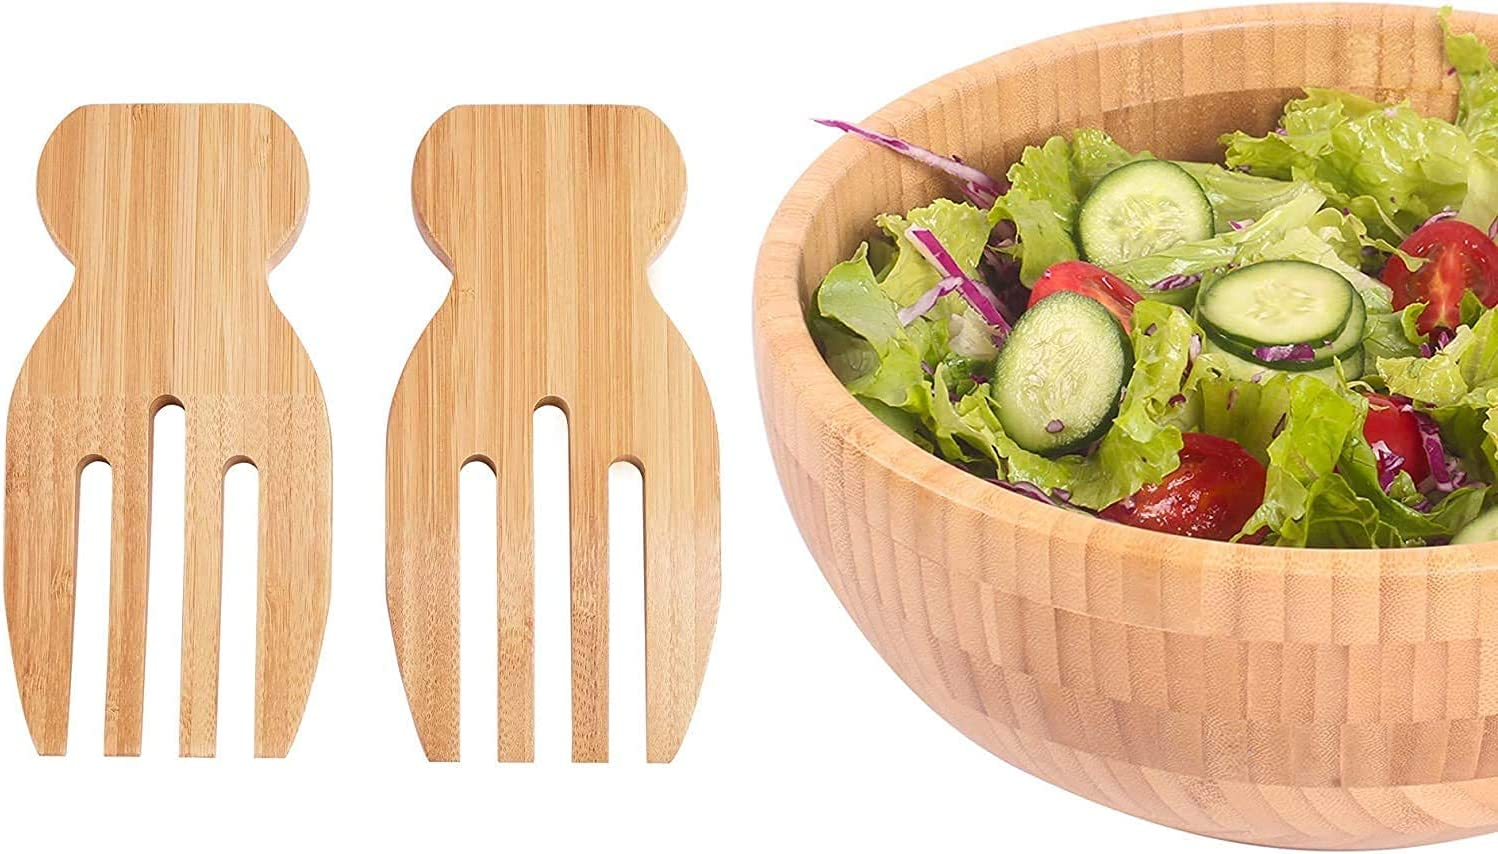 Popular standard Bamboo Salad Bowl with Tongs Large Serving Sale Special Price for 10inch Frui